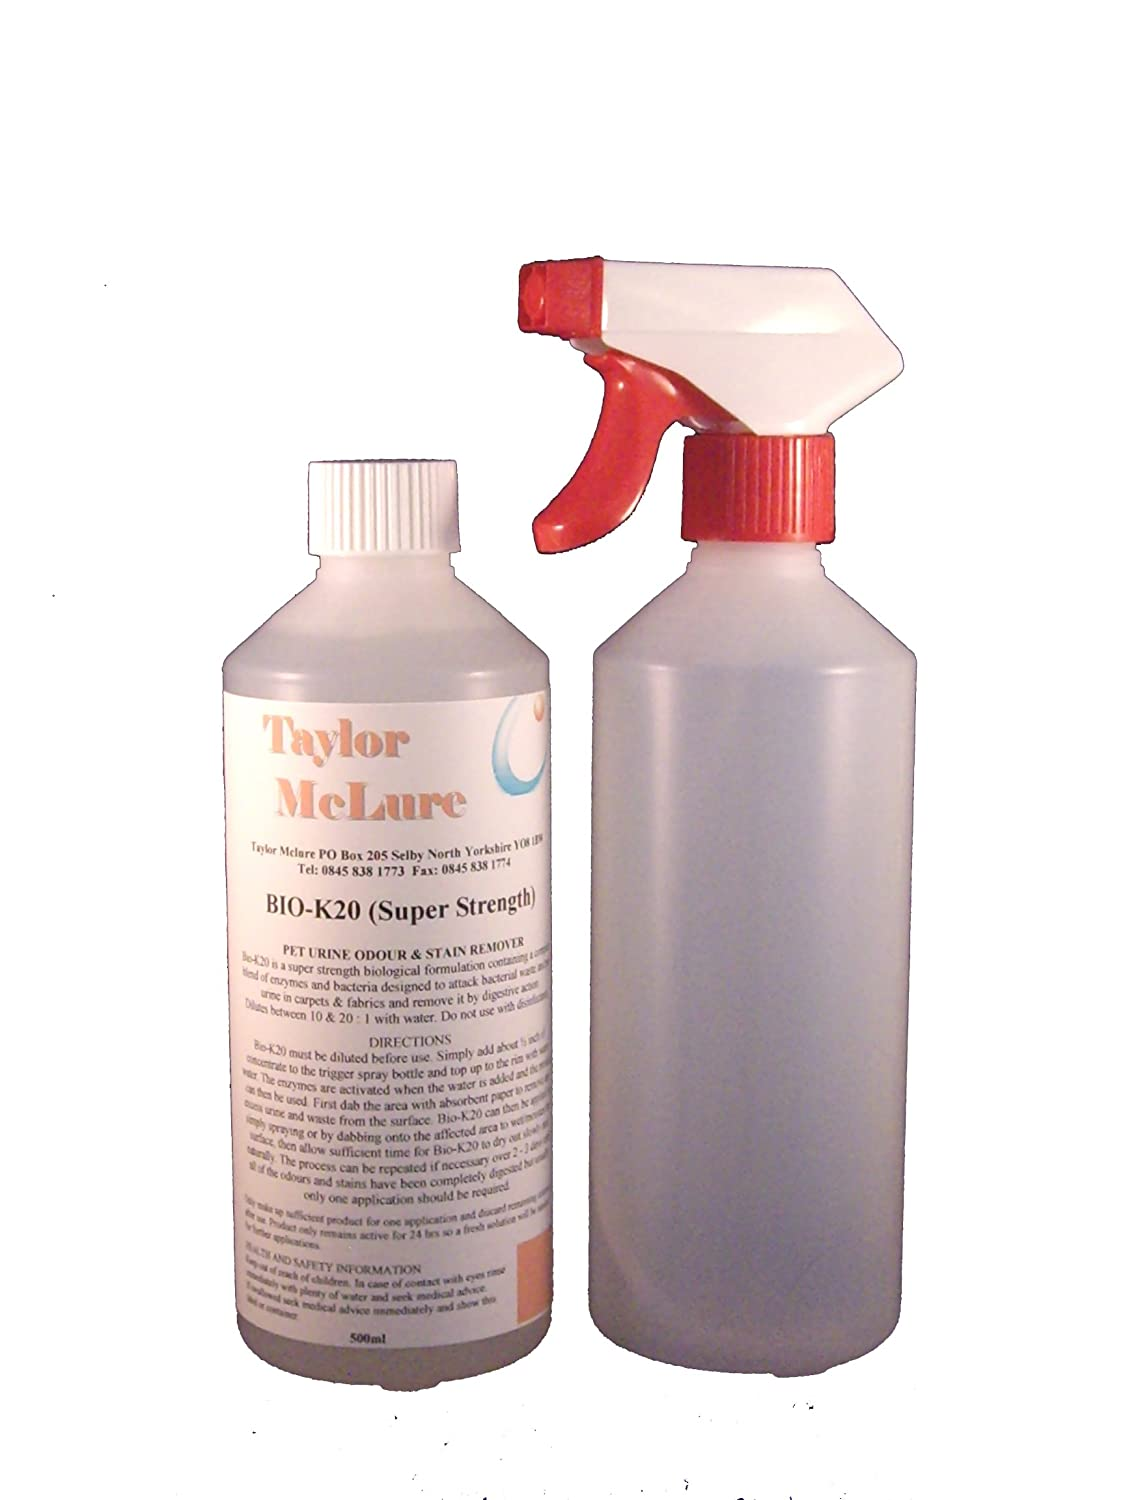 Odour Amp Stain Removers Online Shopping For Clothing